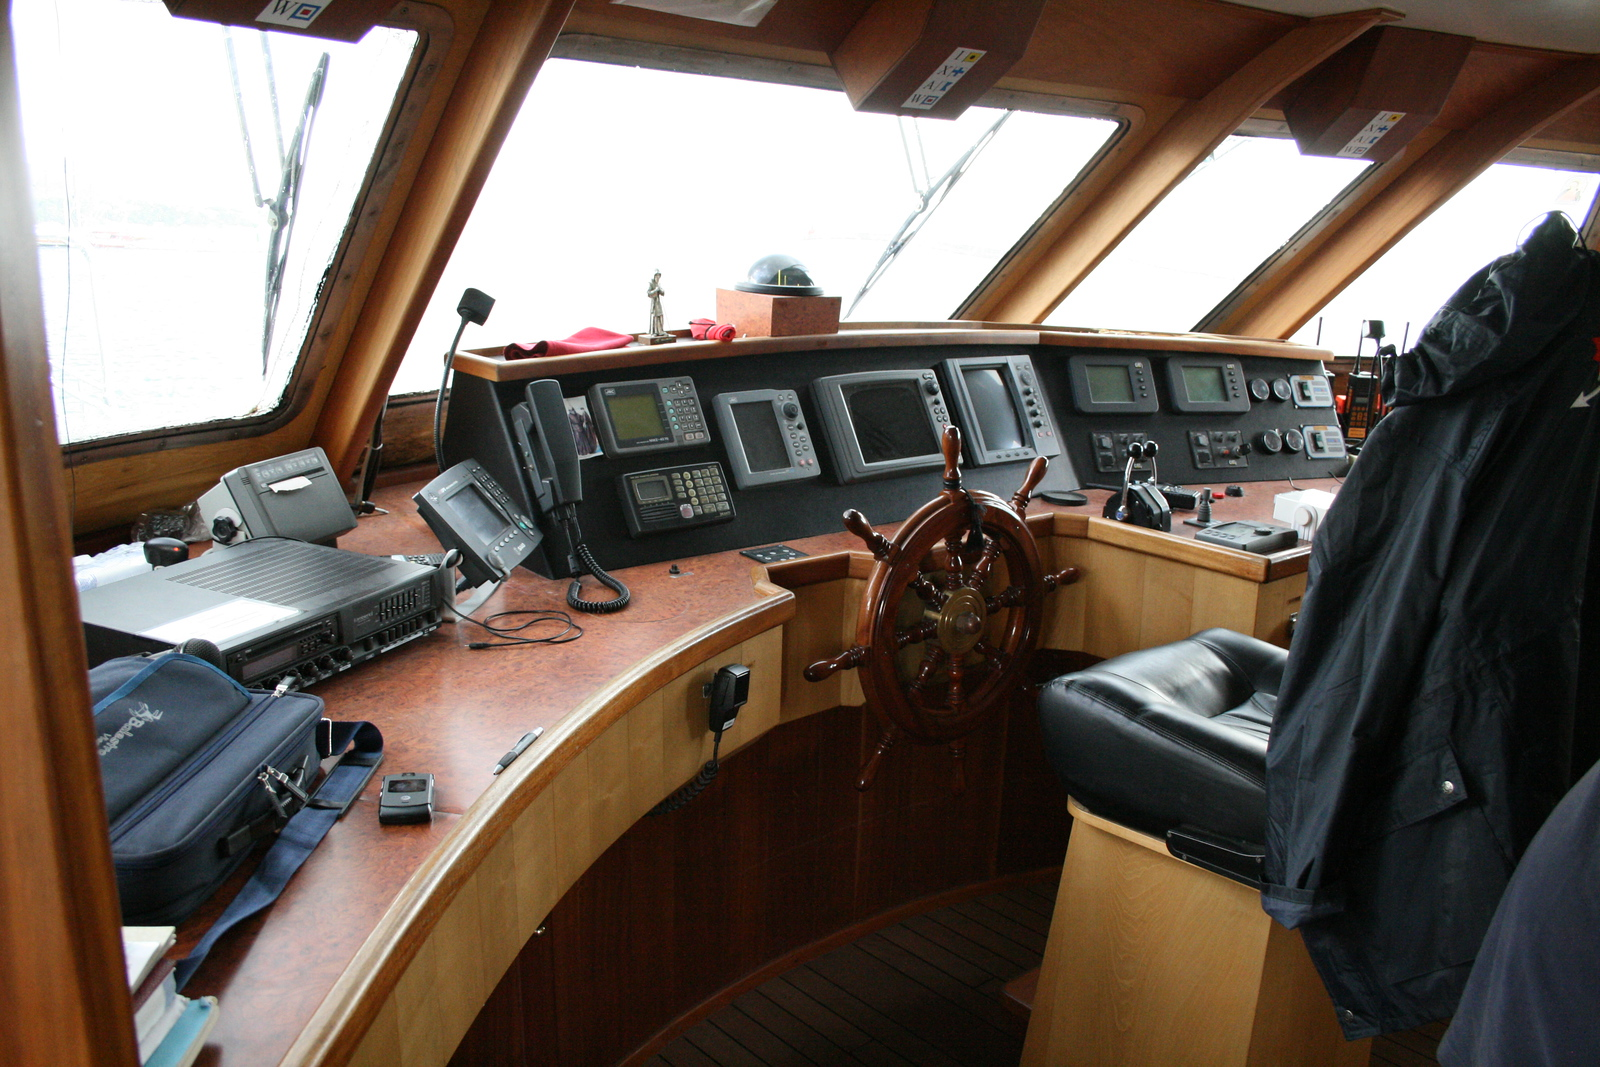 2011 - On board BENEDETTA II in Formia before winter laid-up